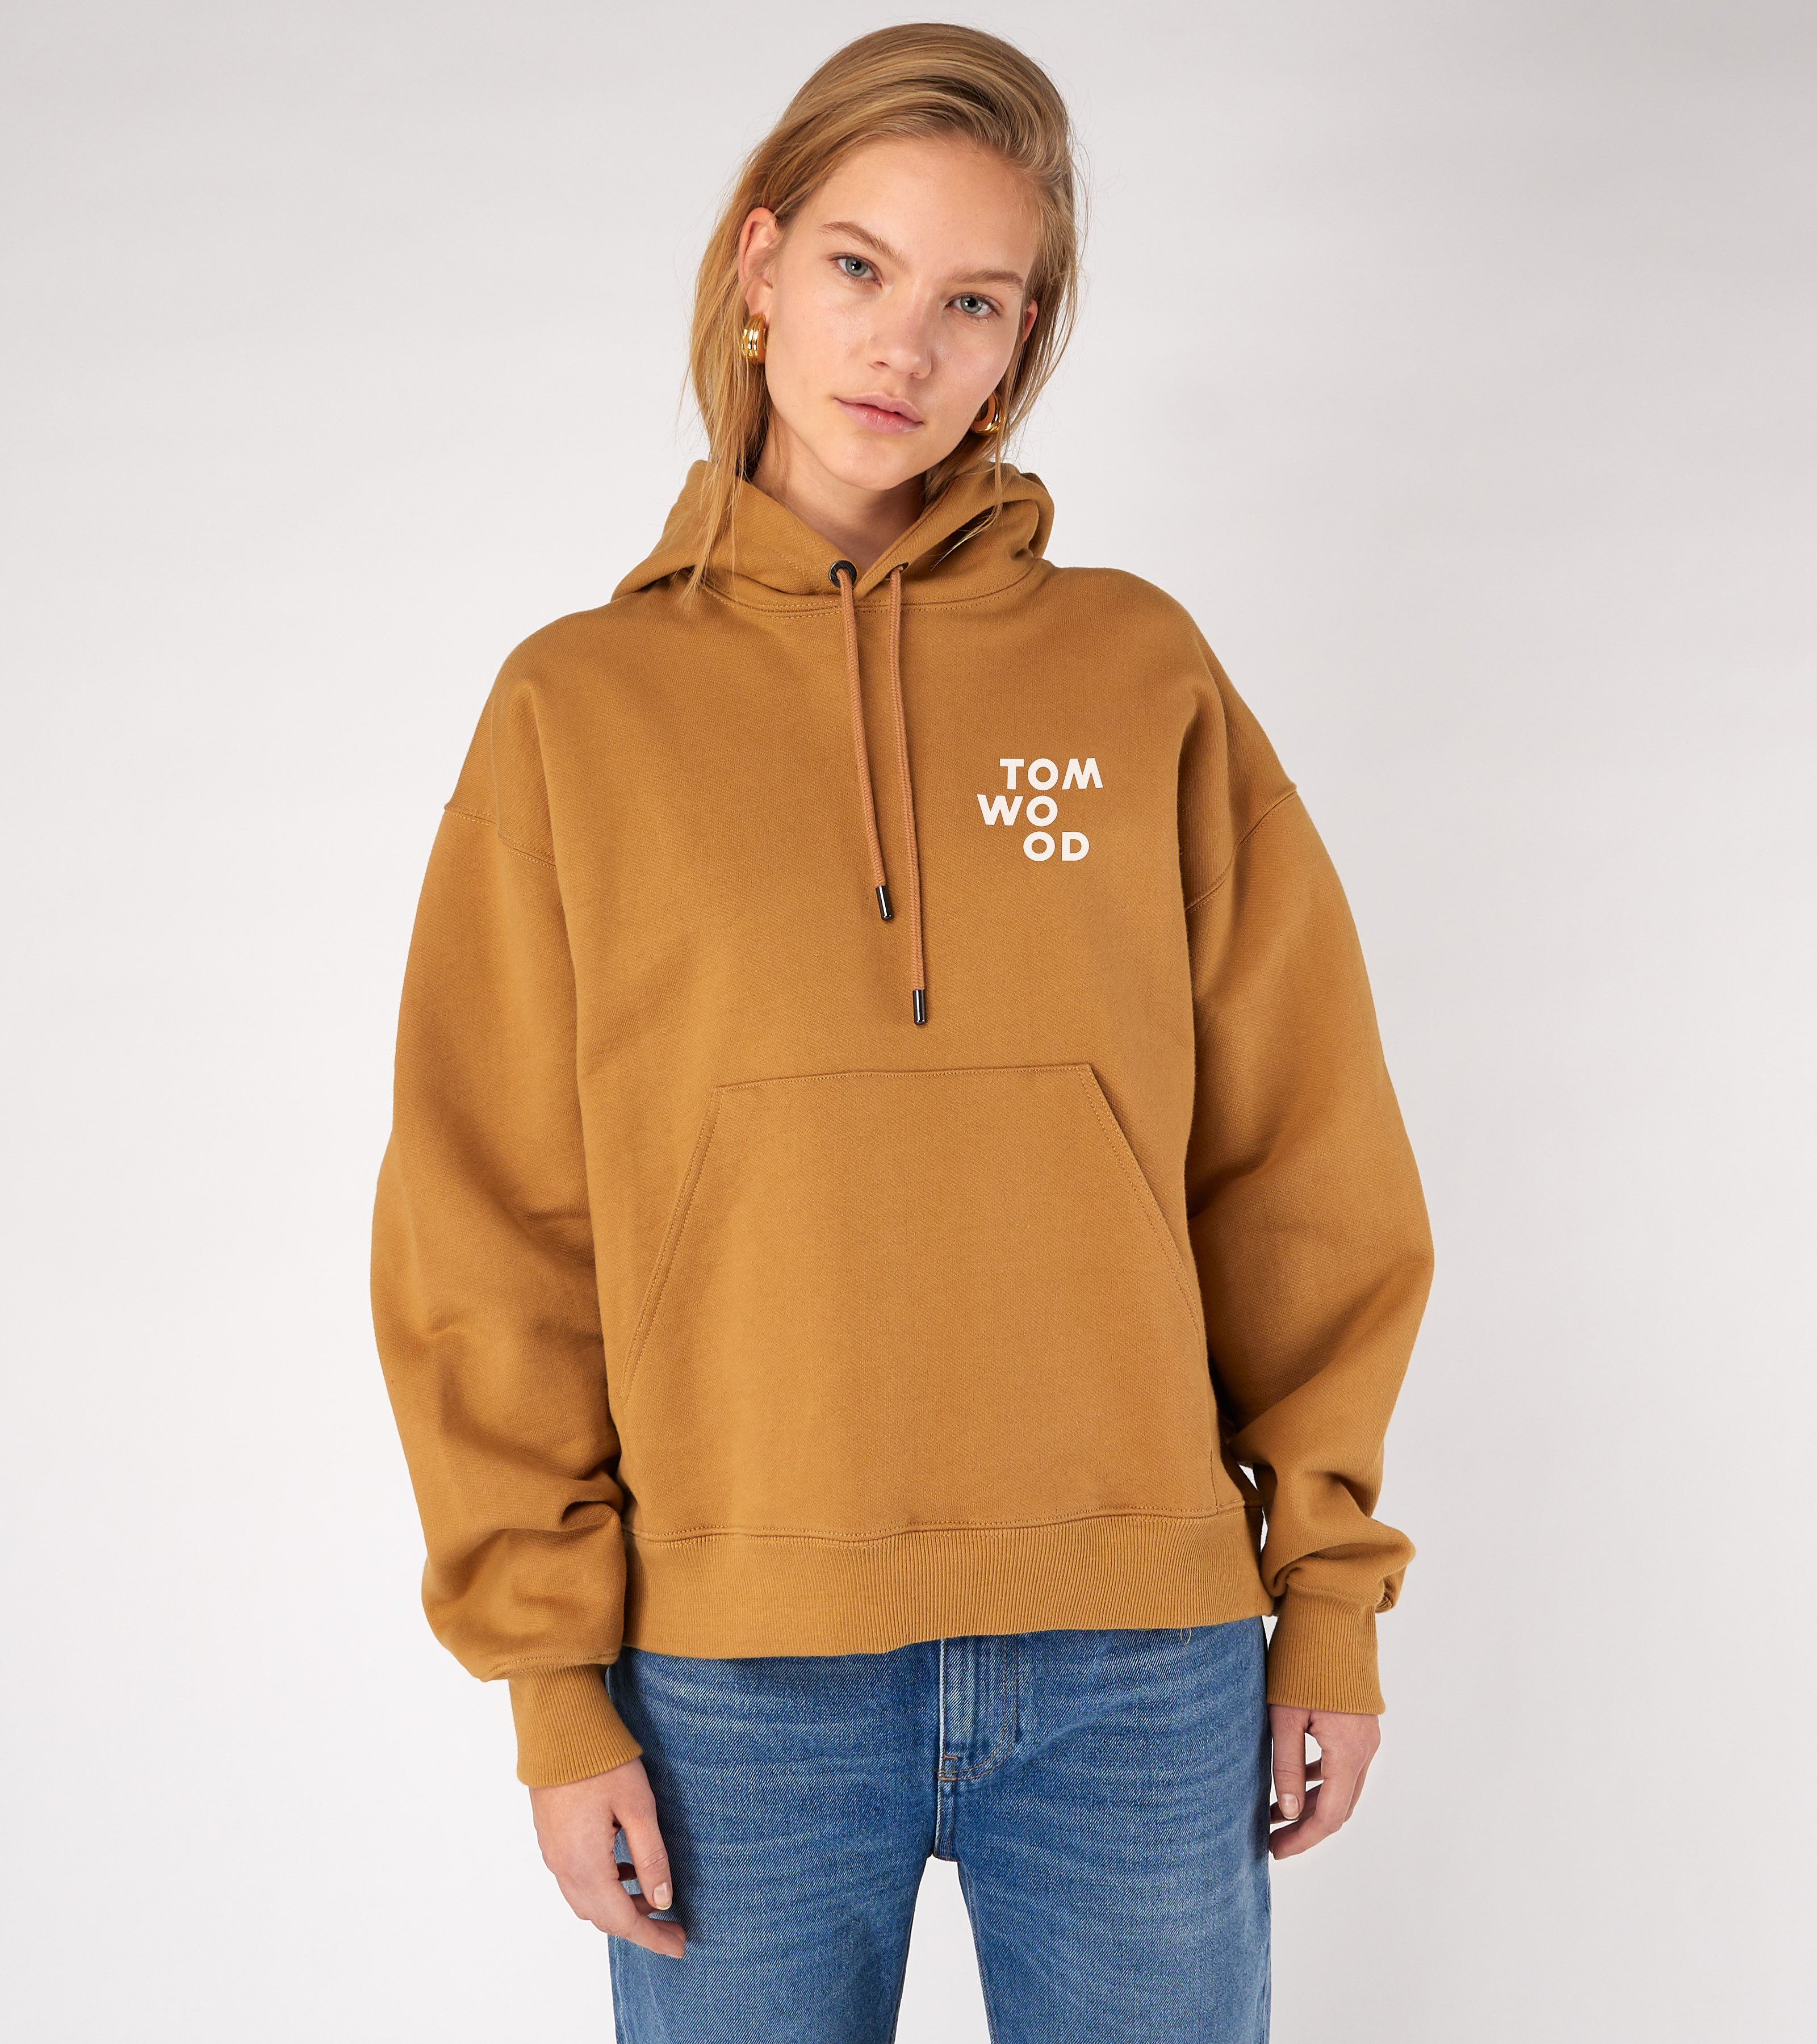 Mira Hoodie The Car Camel